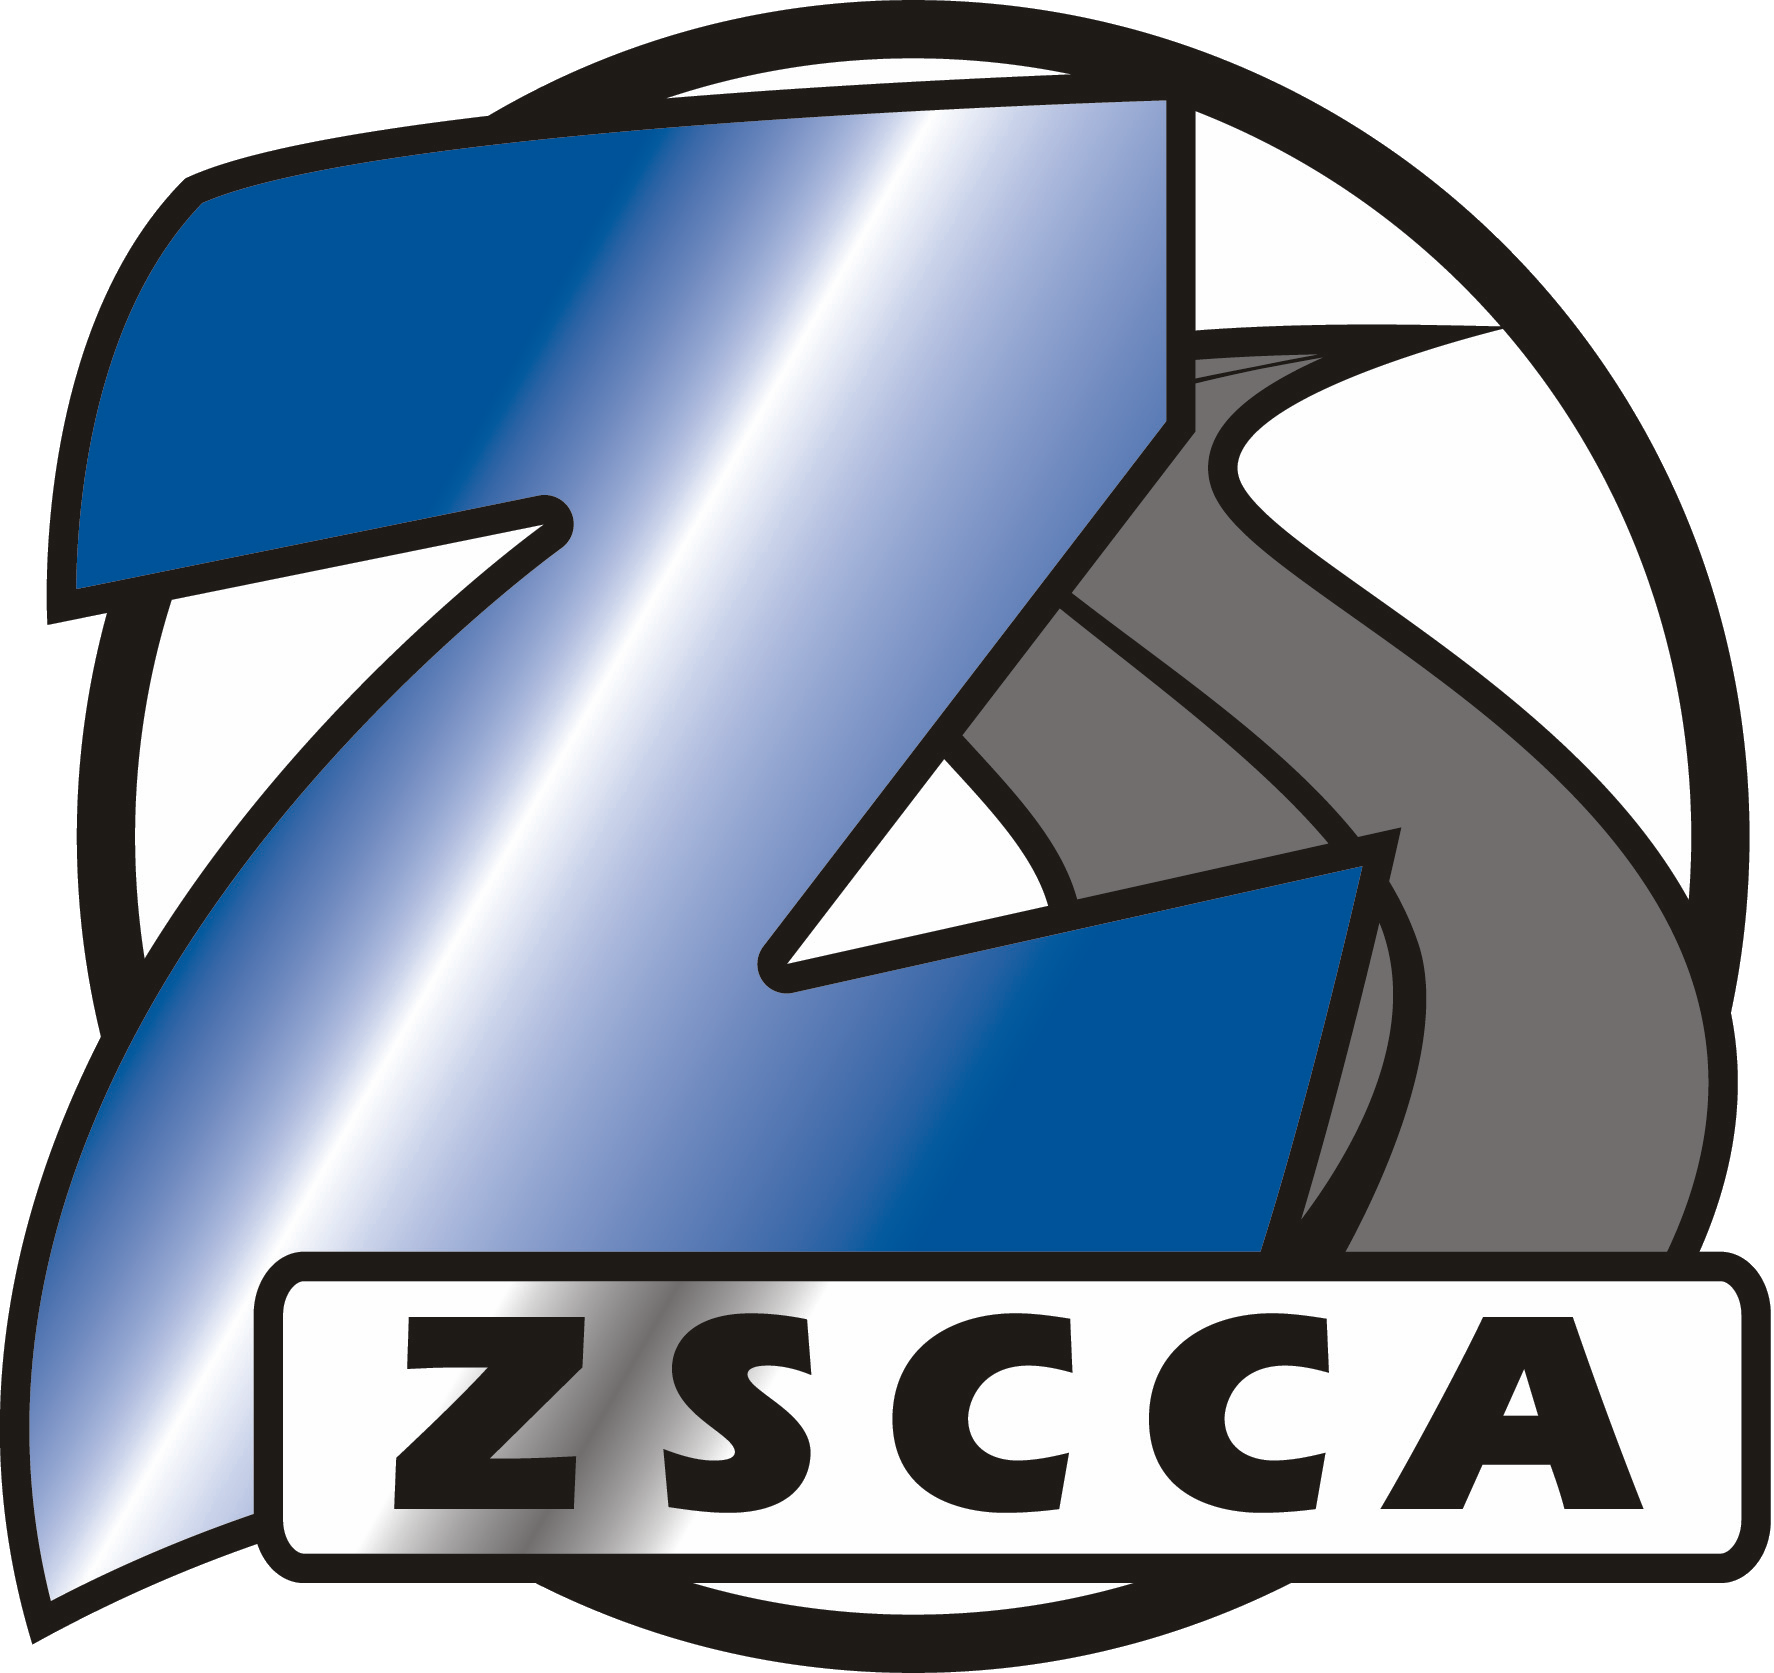 Z Series Car Club of America (ZSCCA)